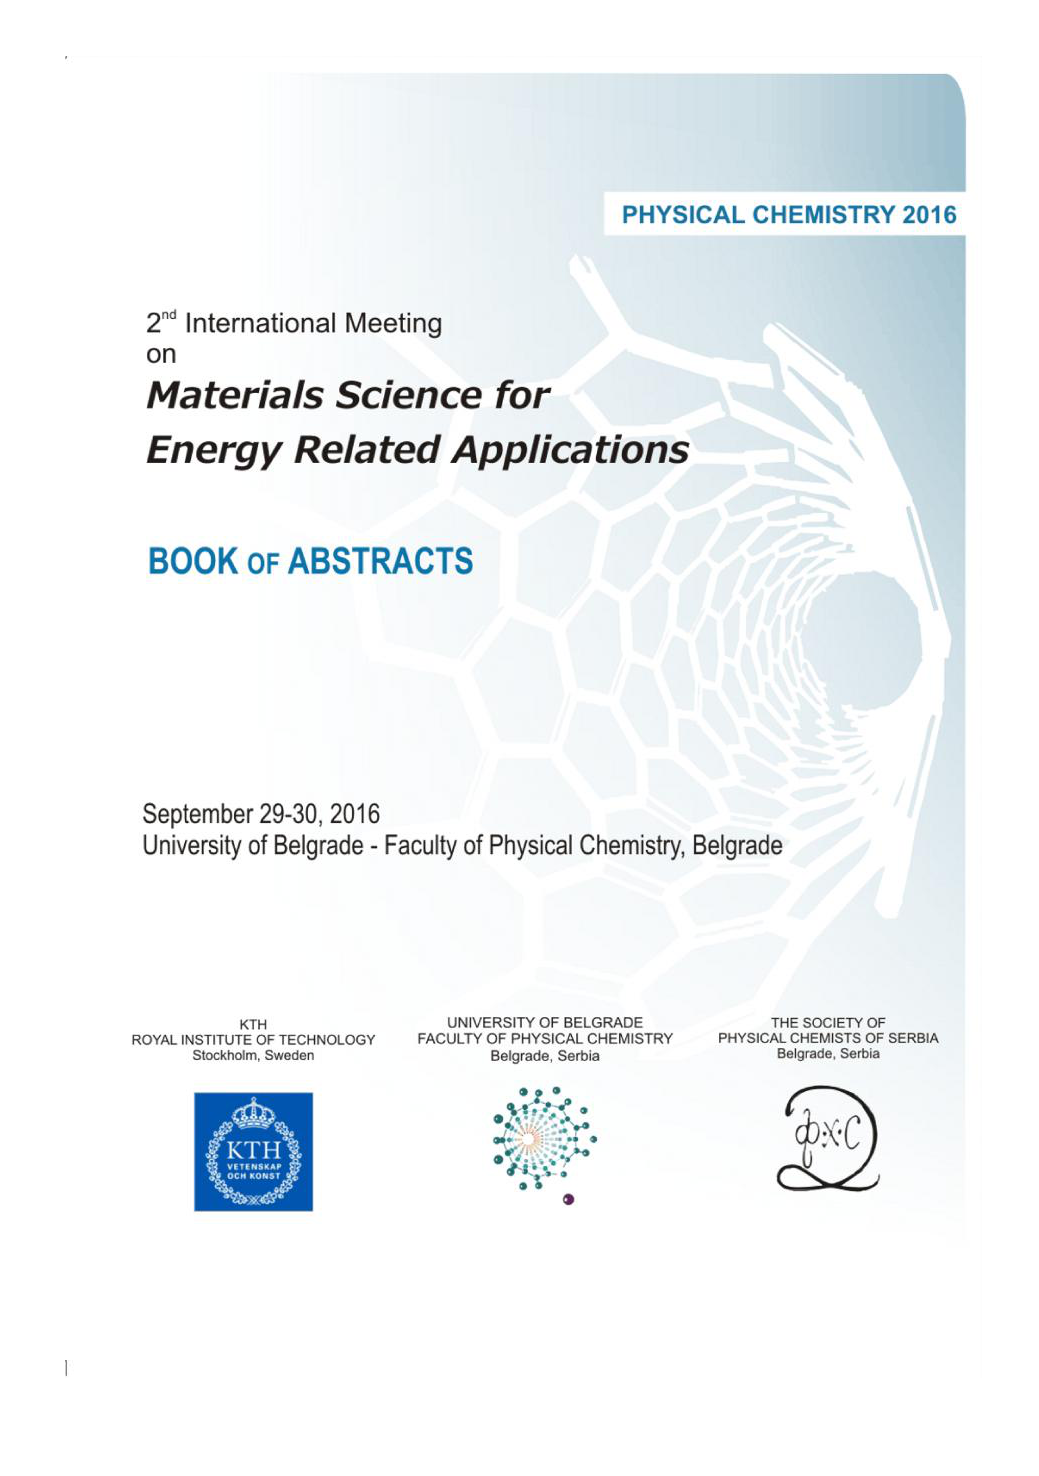 Materials 2016 - Book of Abstracts